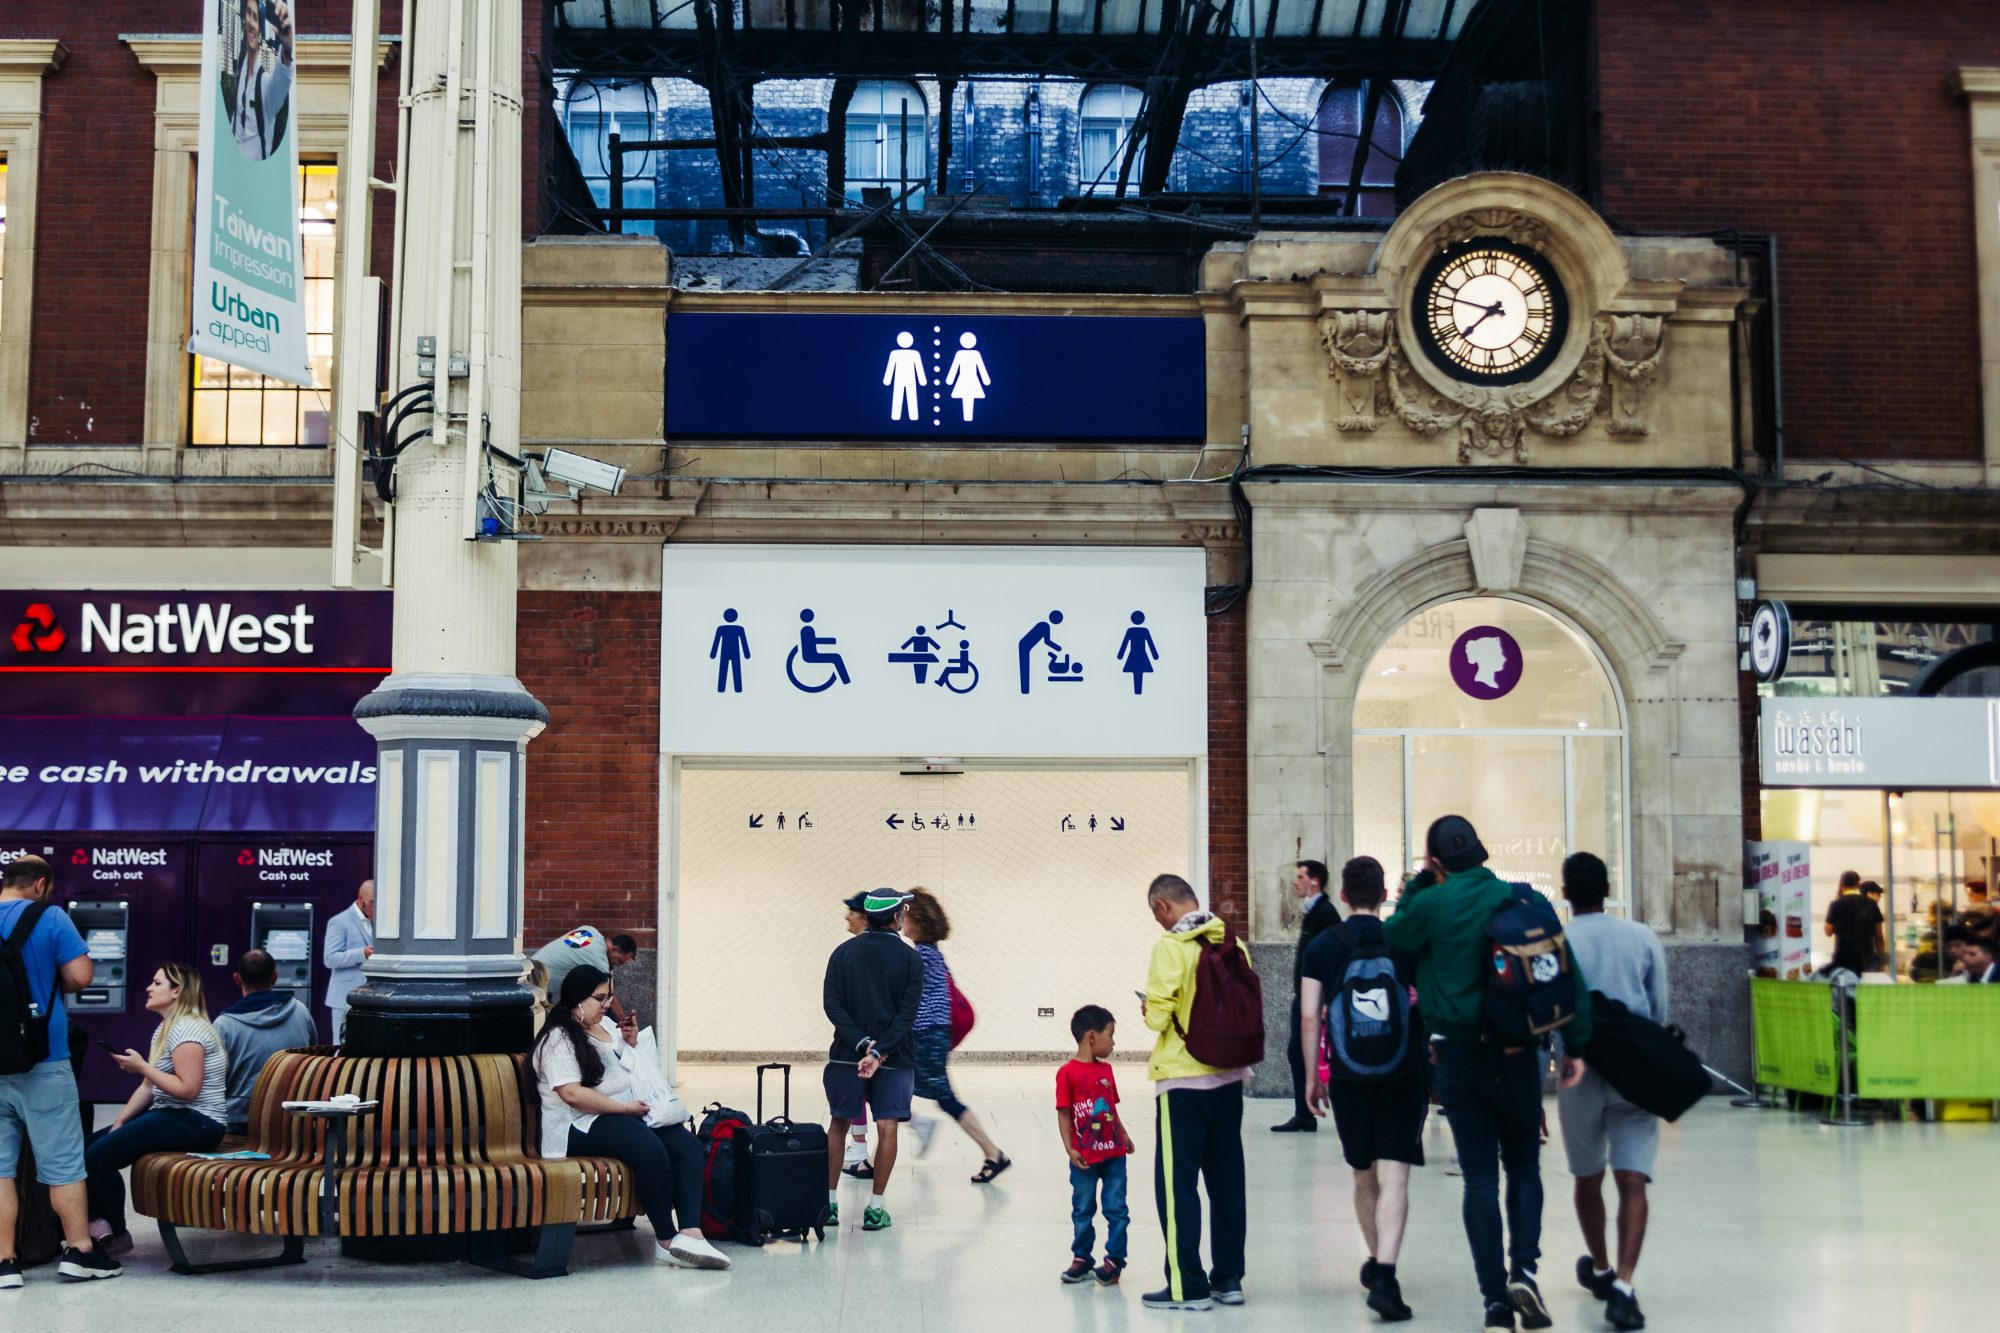 £30m funding for Changing Places toilets in England